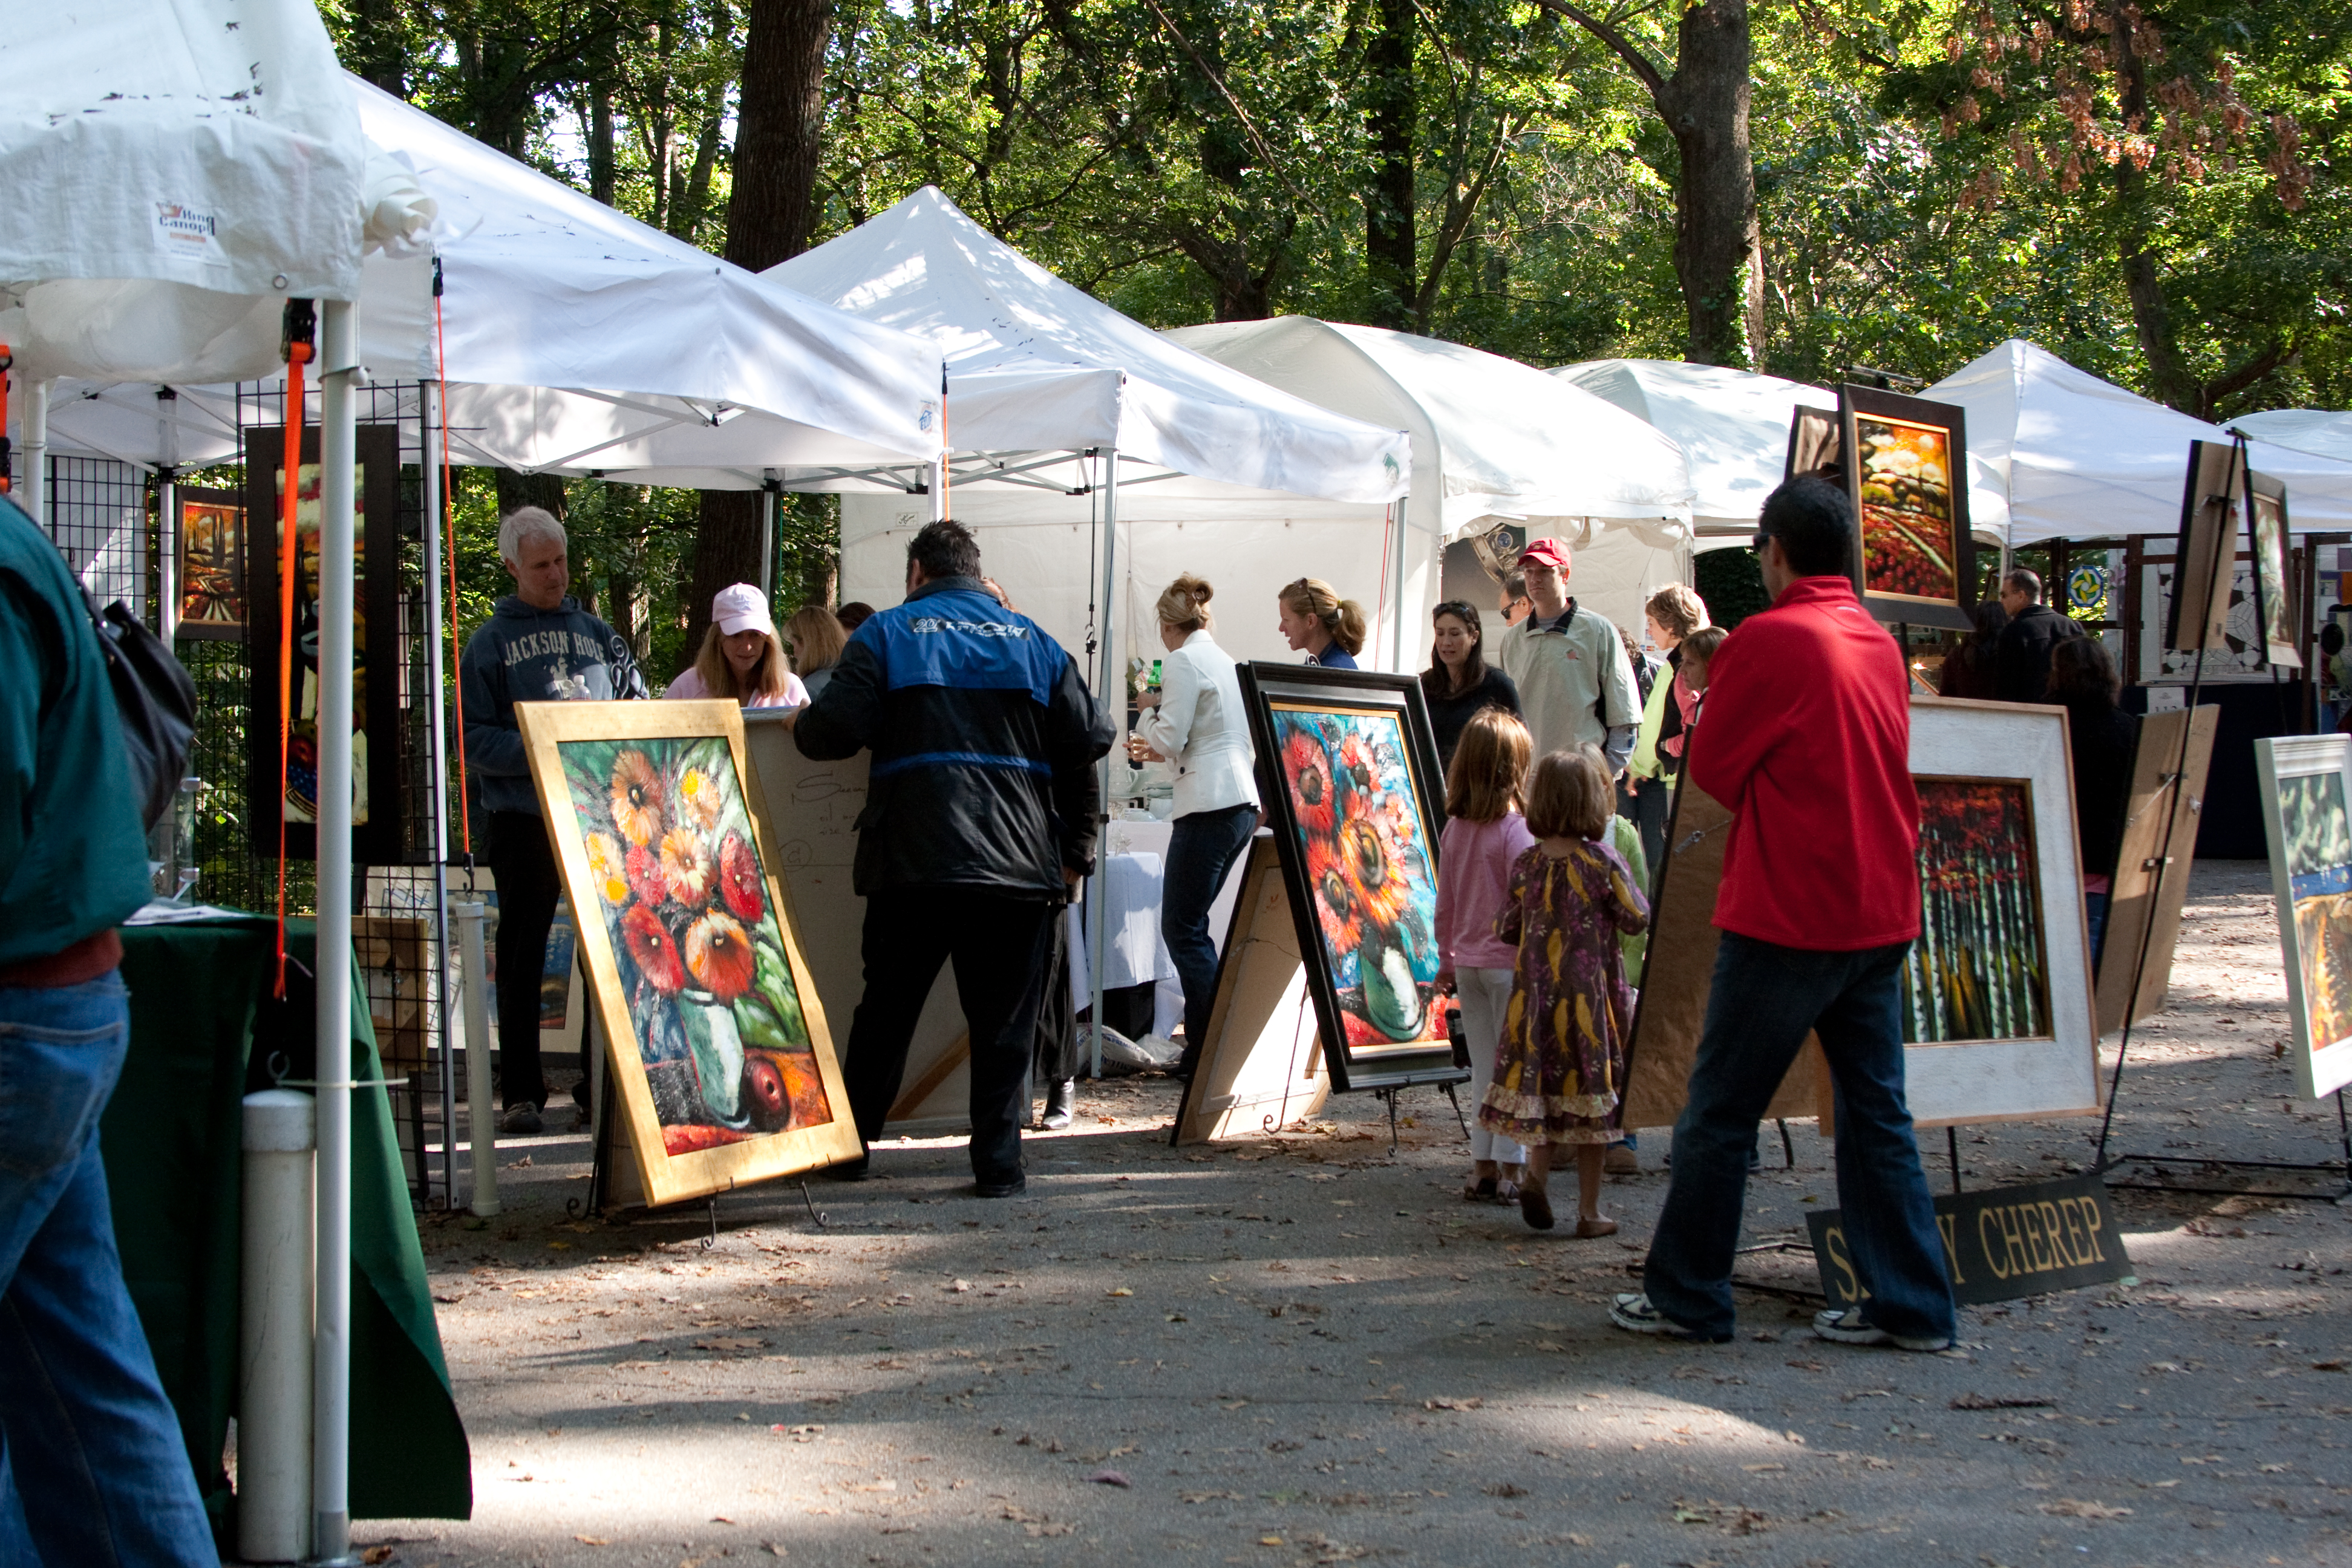 23 fun things to do in nj the digest On craft fairs in nj this weekend